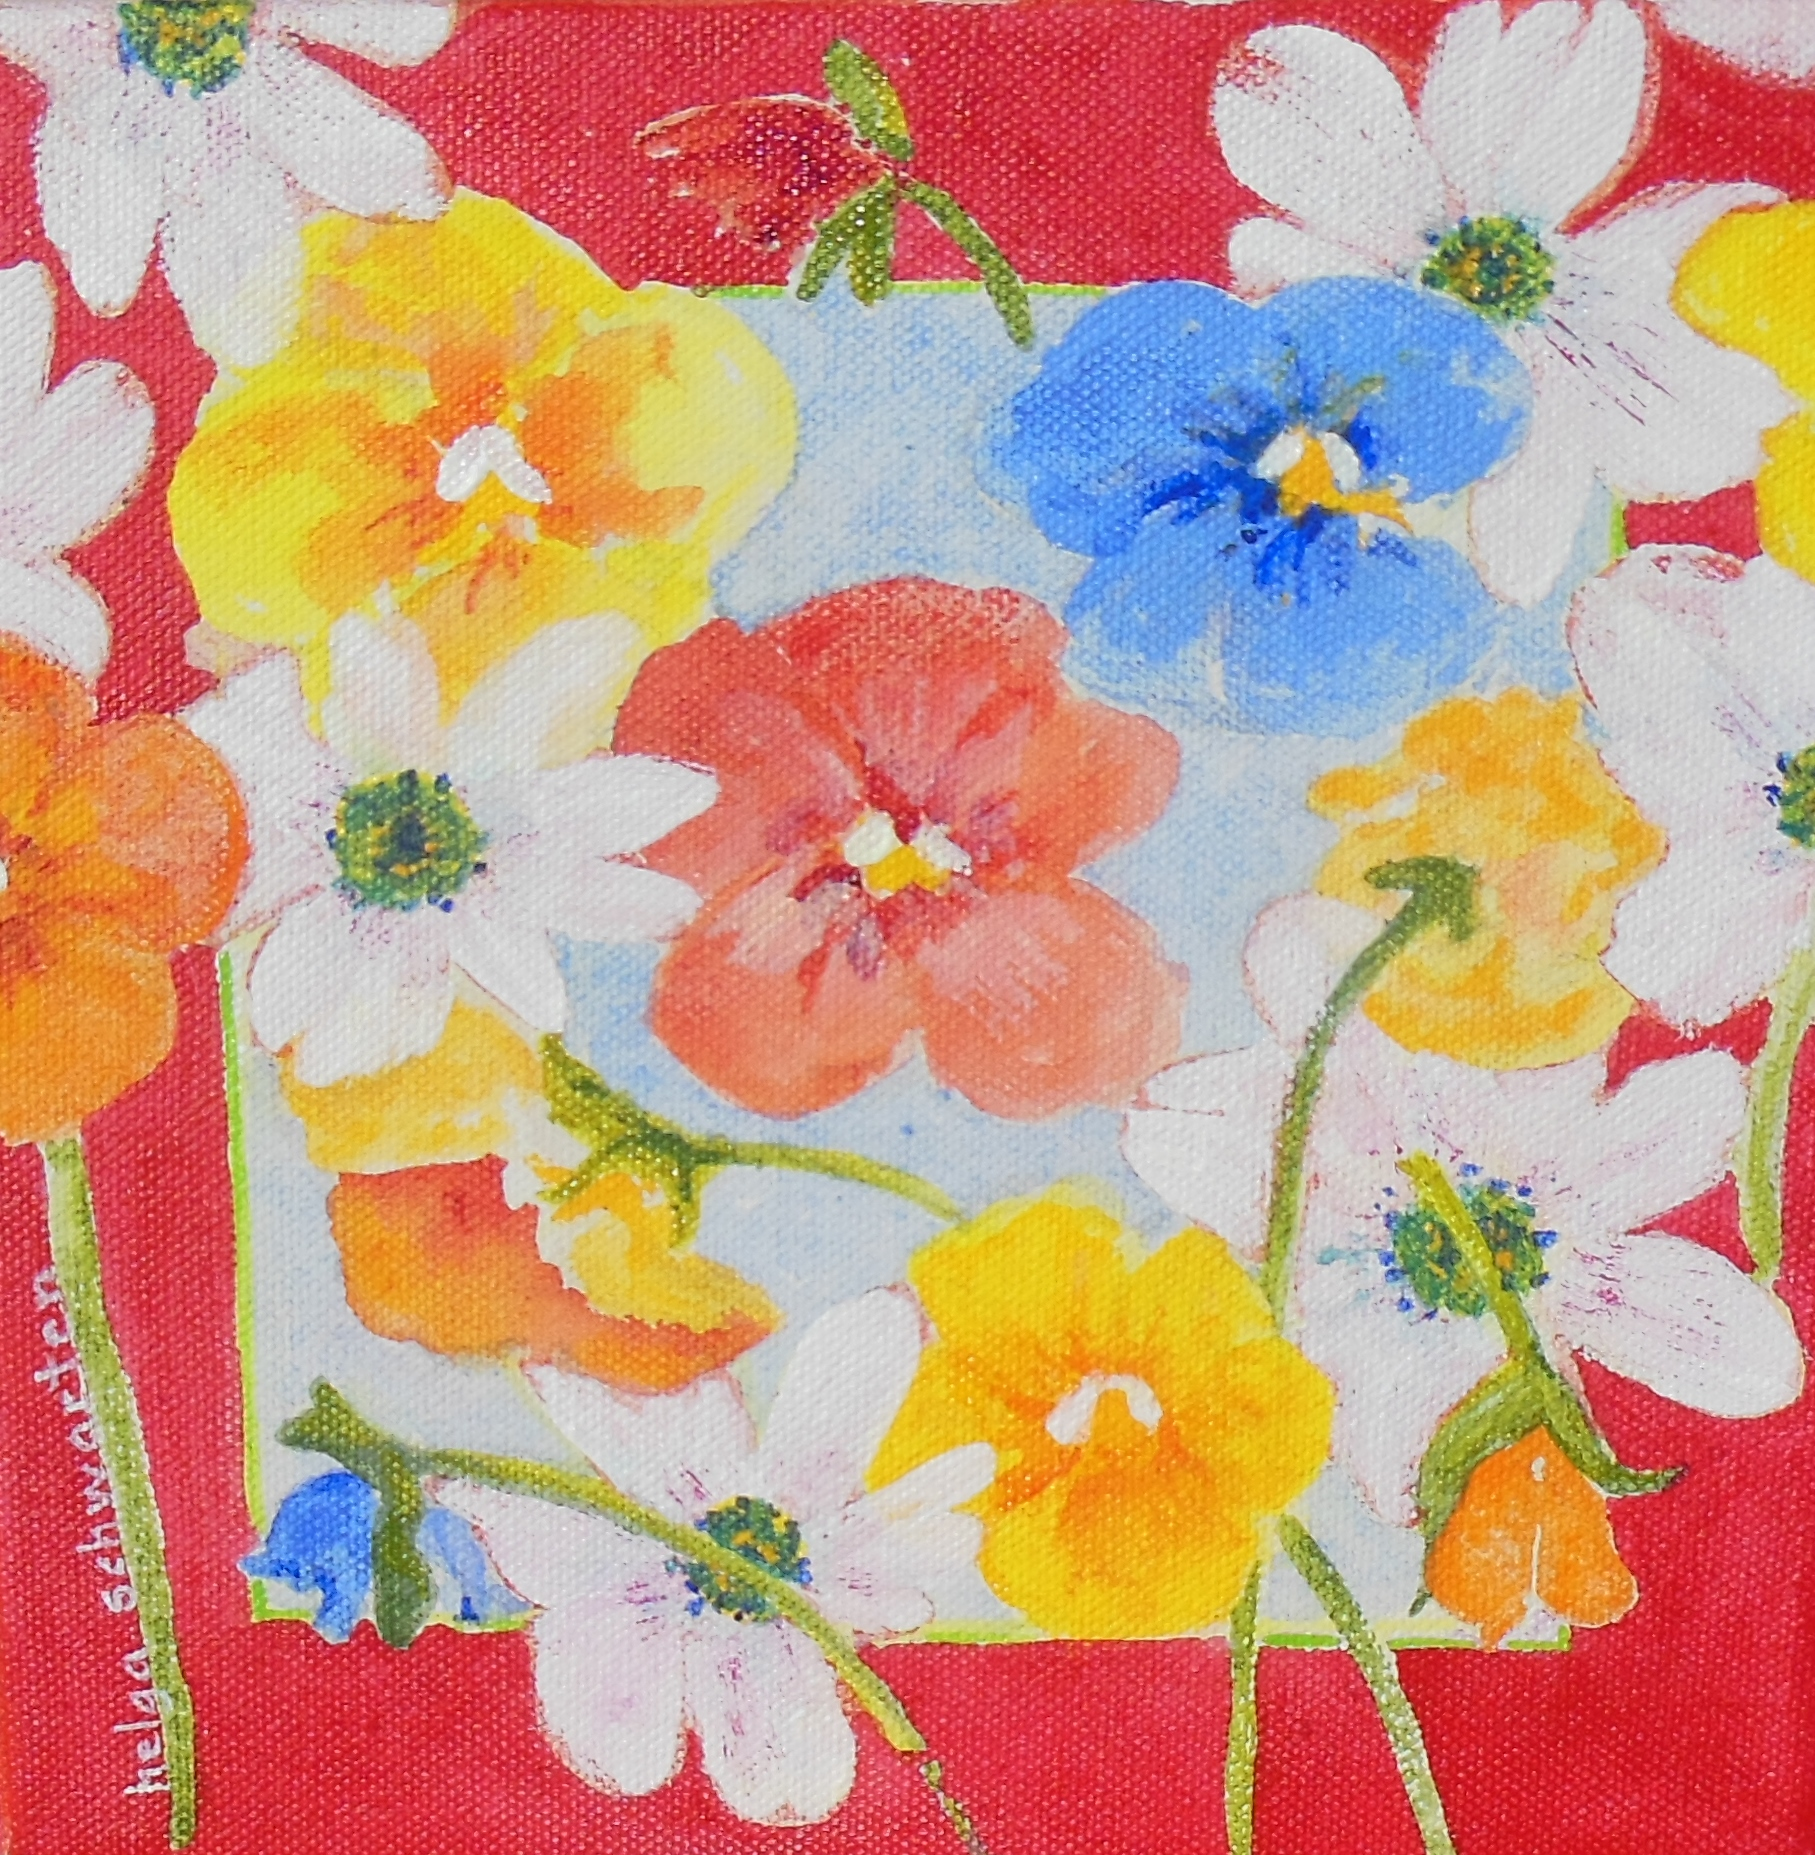 Pansies in the Red